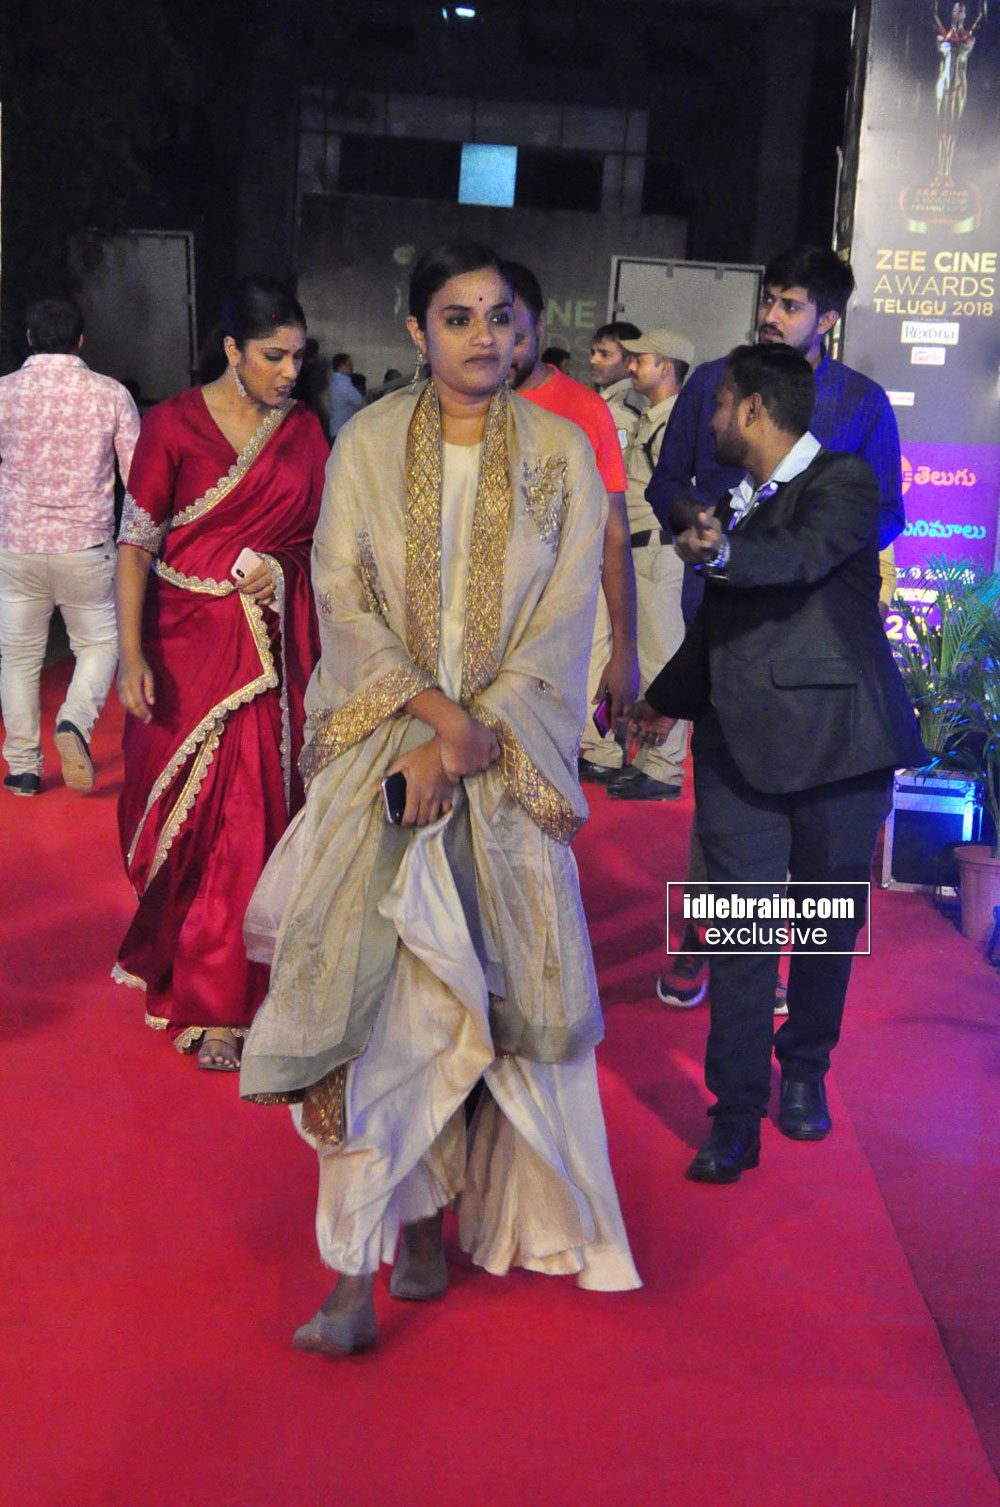 Zee Cine Awards Telugu 2018 Red Carpet - Telugu cinema